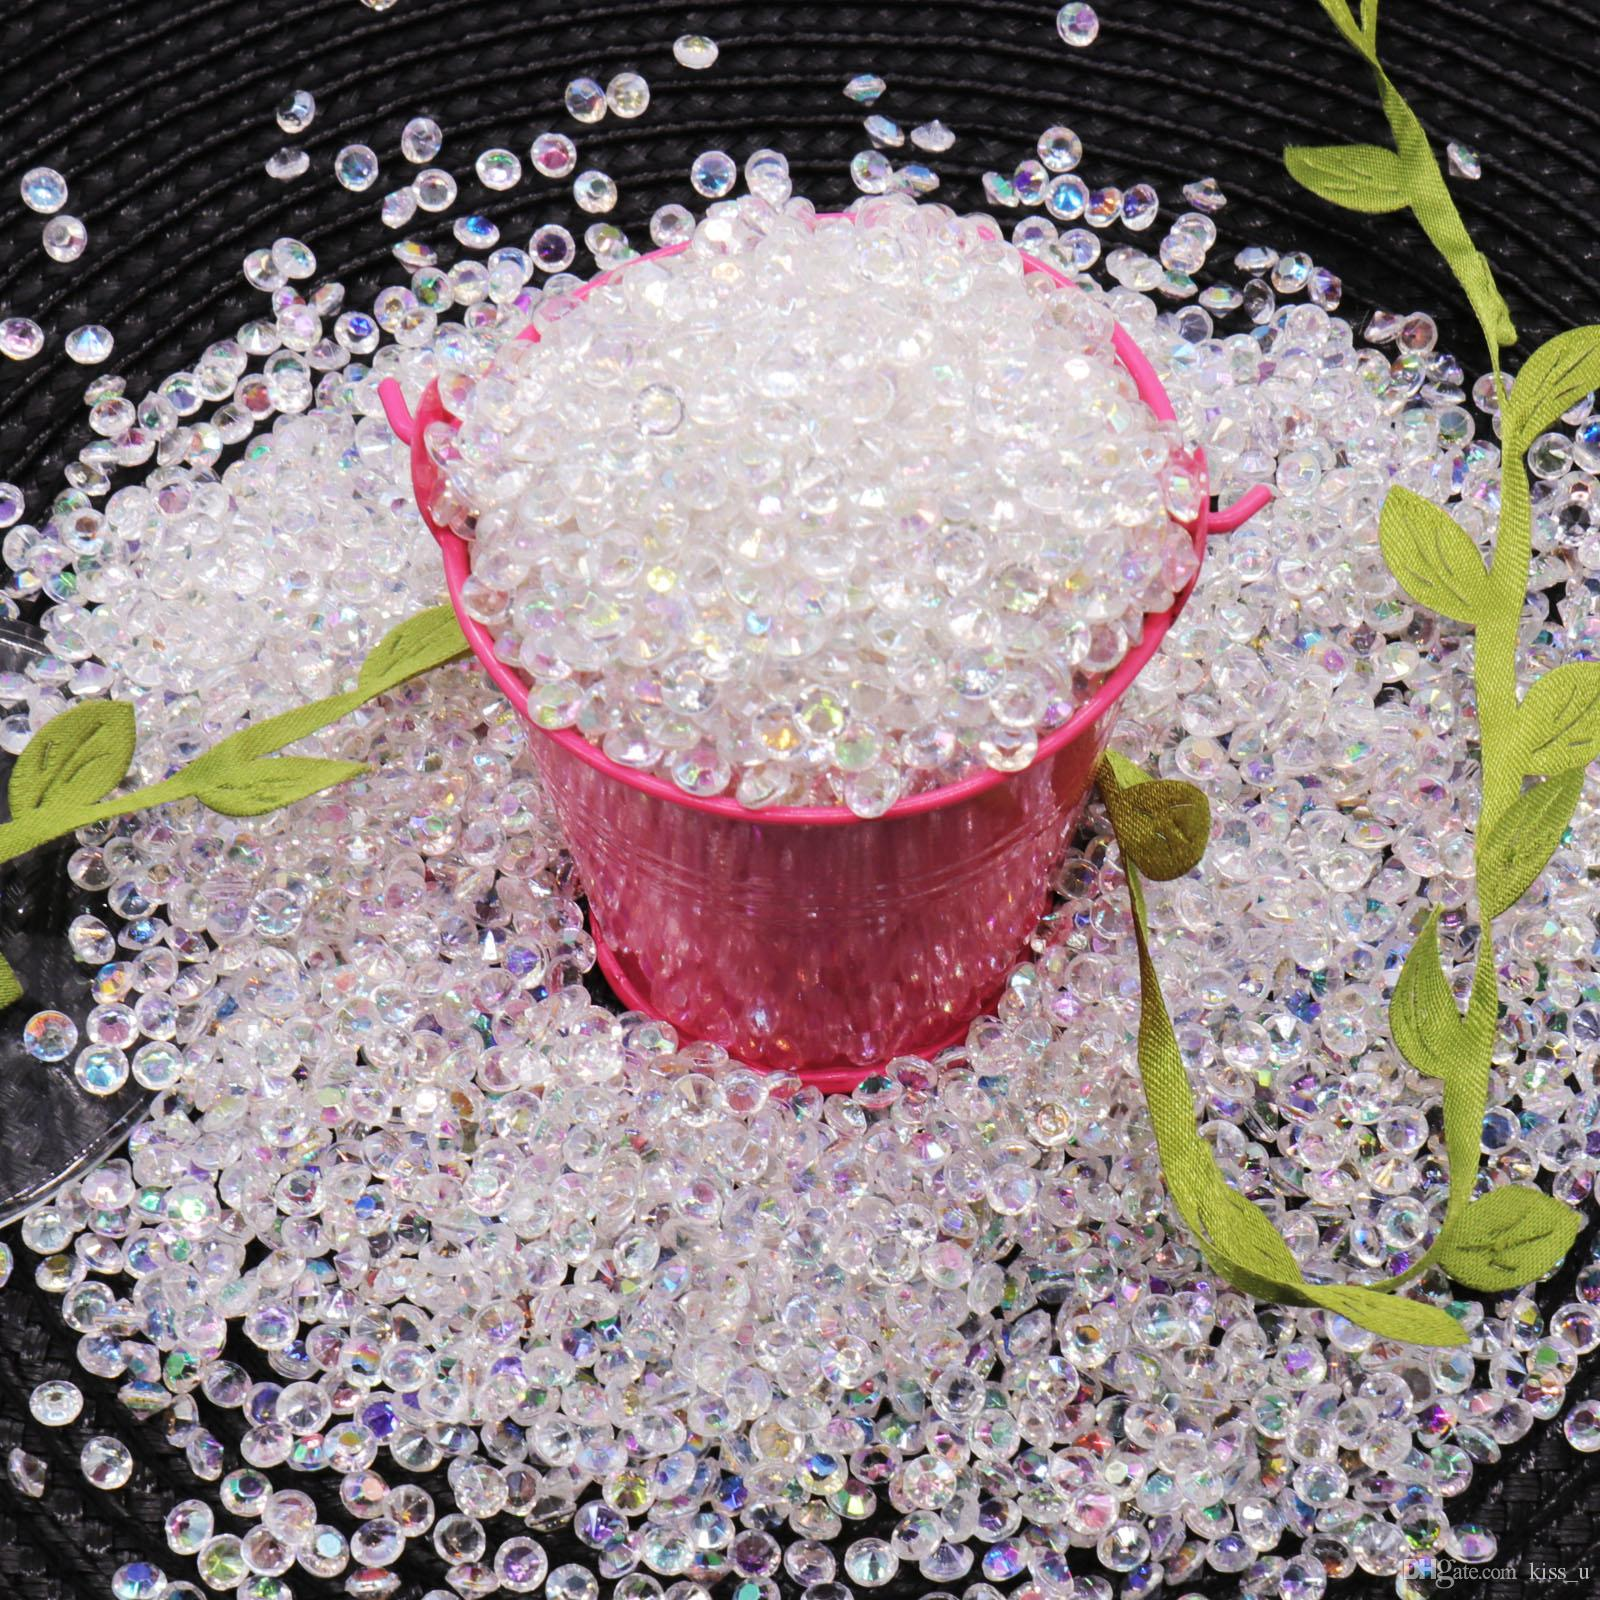 Hot 5000pcs 4.5mm Acrylic Diamond Crystal Bling Transparent Confetti For Wedding Party Decoration Confetti Table Scatter Beads